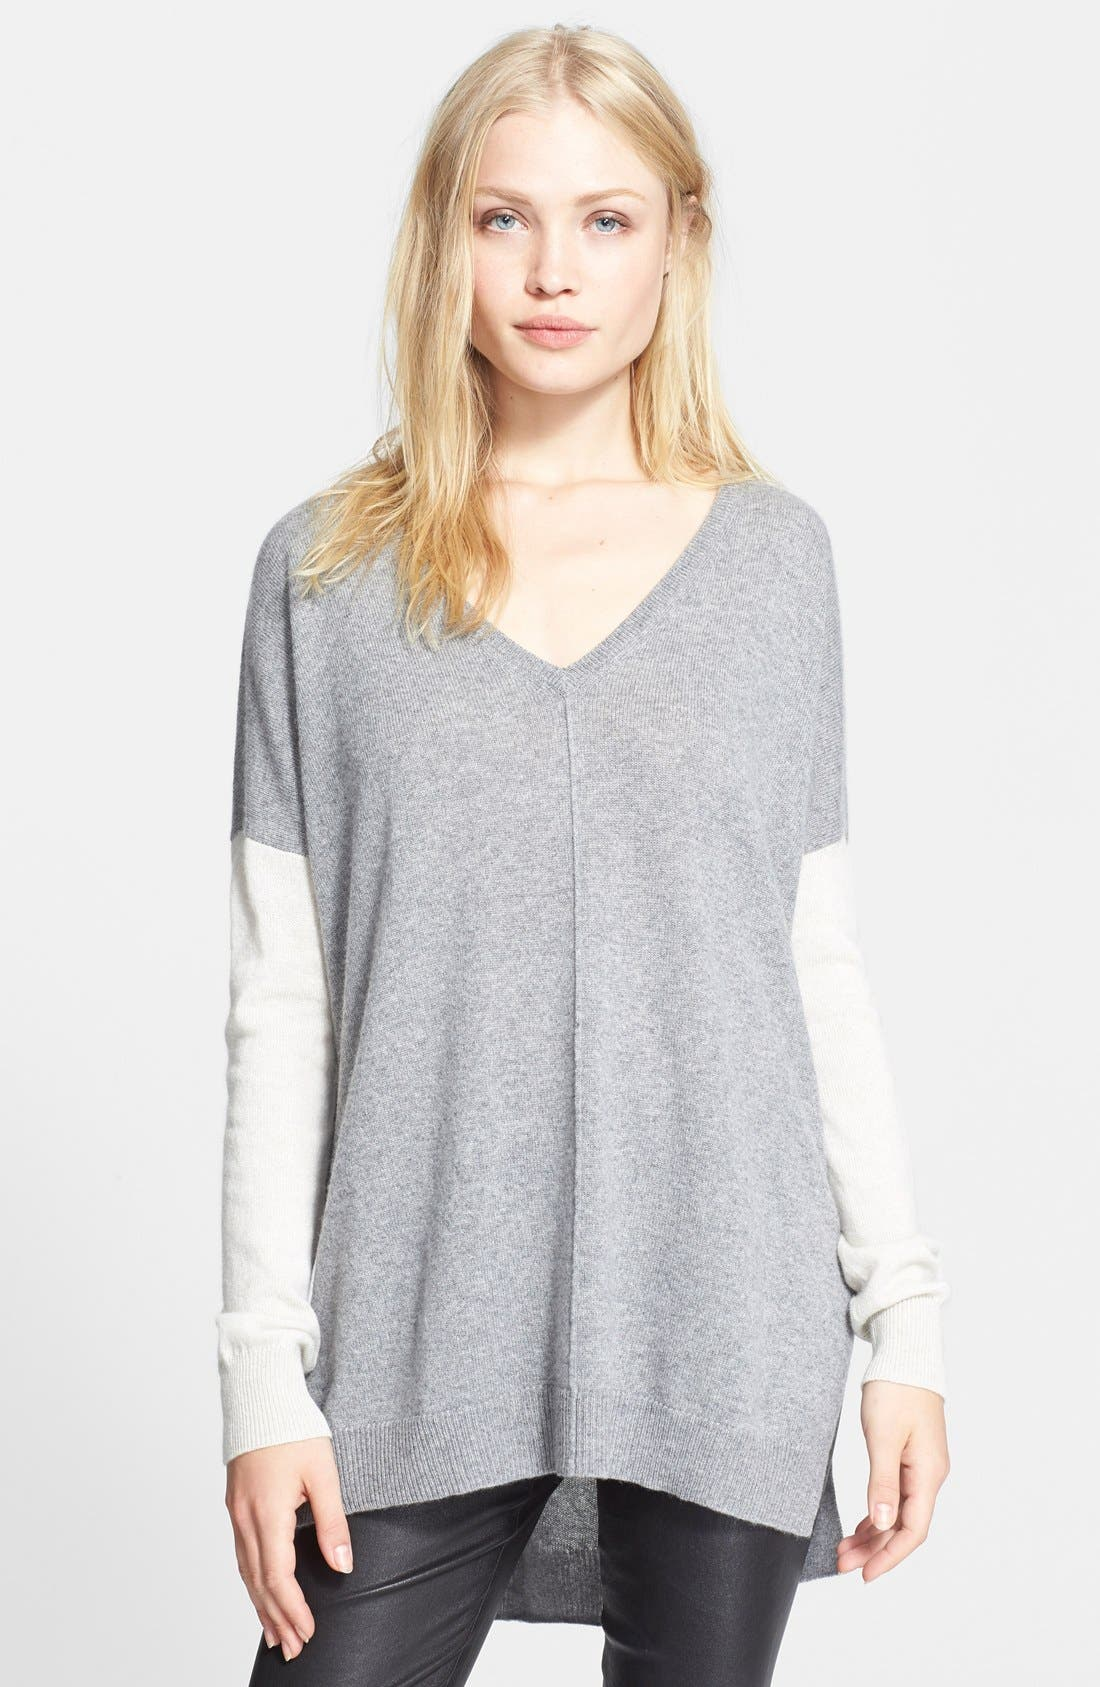 Alternate Image 1 Selected - autumn cashmere Colorblock High/Low Cashmere Sweater (Nordstrom Exclusive)